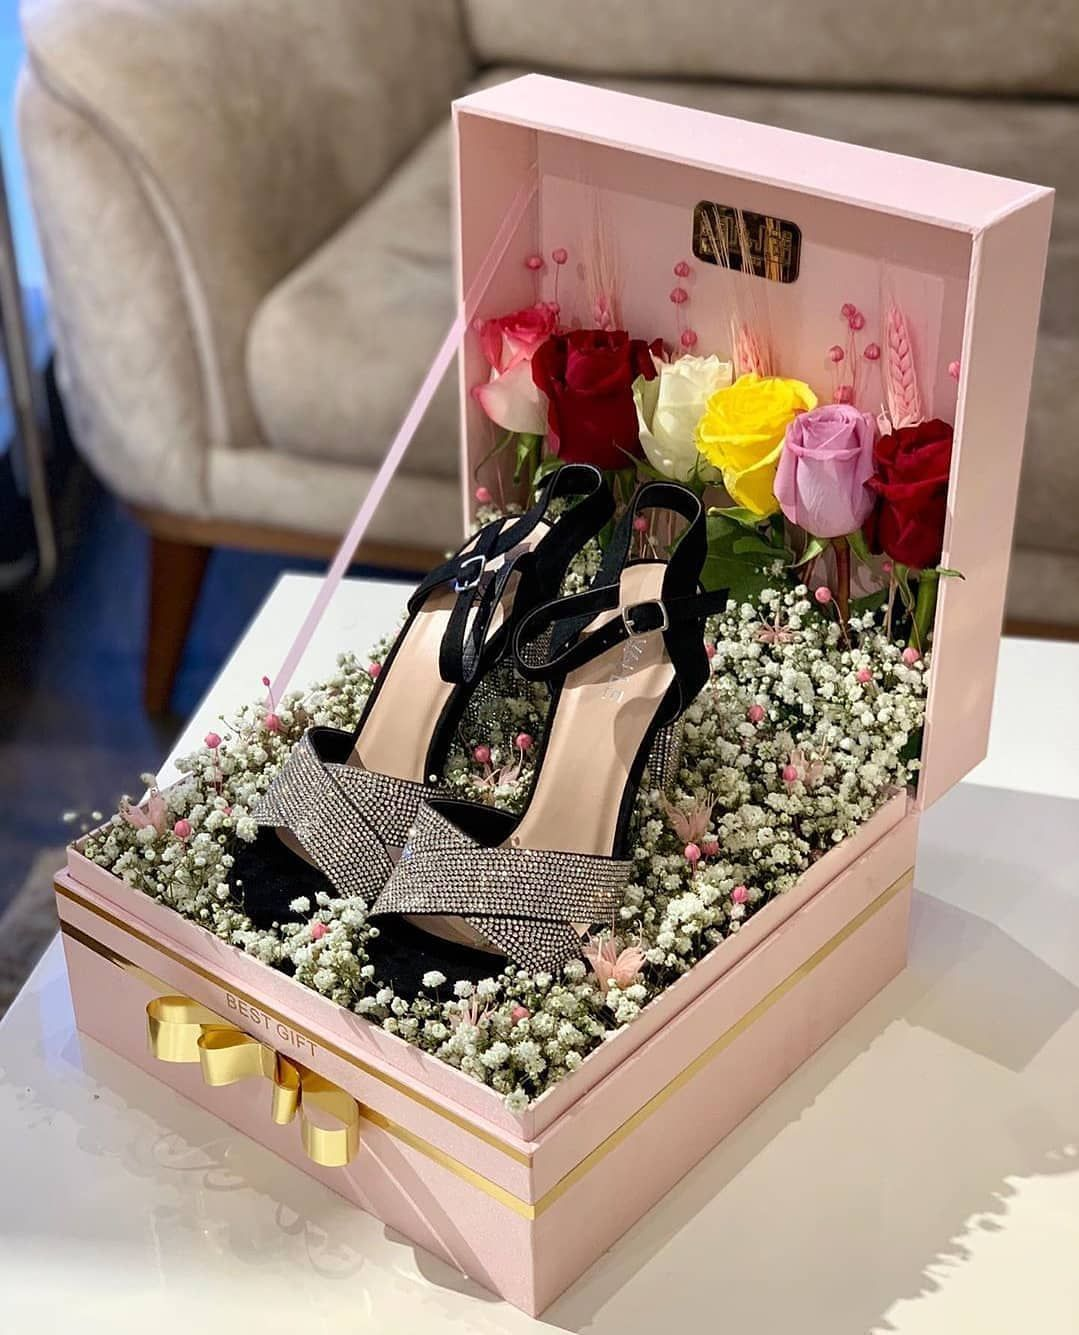 4 343 Mentions J Aime 45 Commentaires 𝕯𝖍𝖆𝖟 𝖒𝖆𝖗𝖔𝖈𝖆𝖎𝖓 Dhazmarocain Sur Insta Wedding Gifts Packaging Wedding Gift Pack Makeup Gifts Basket